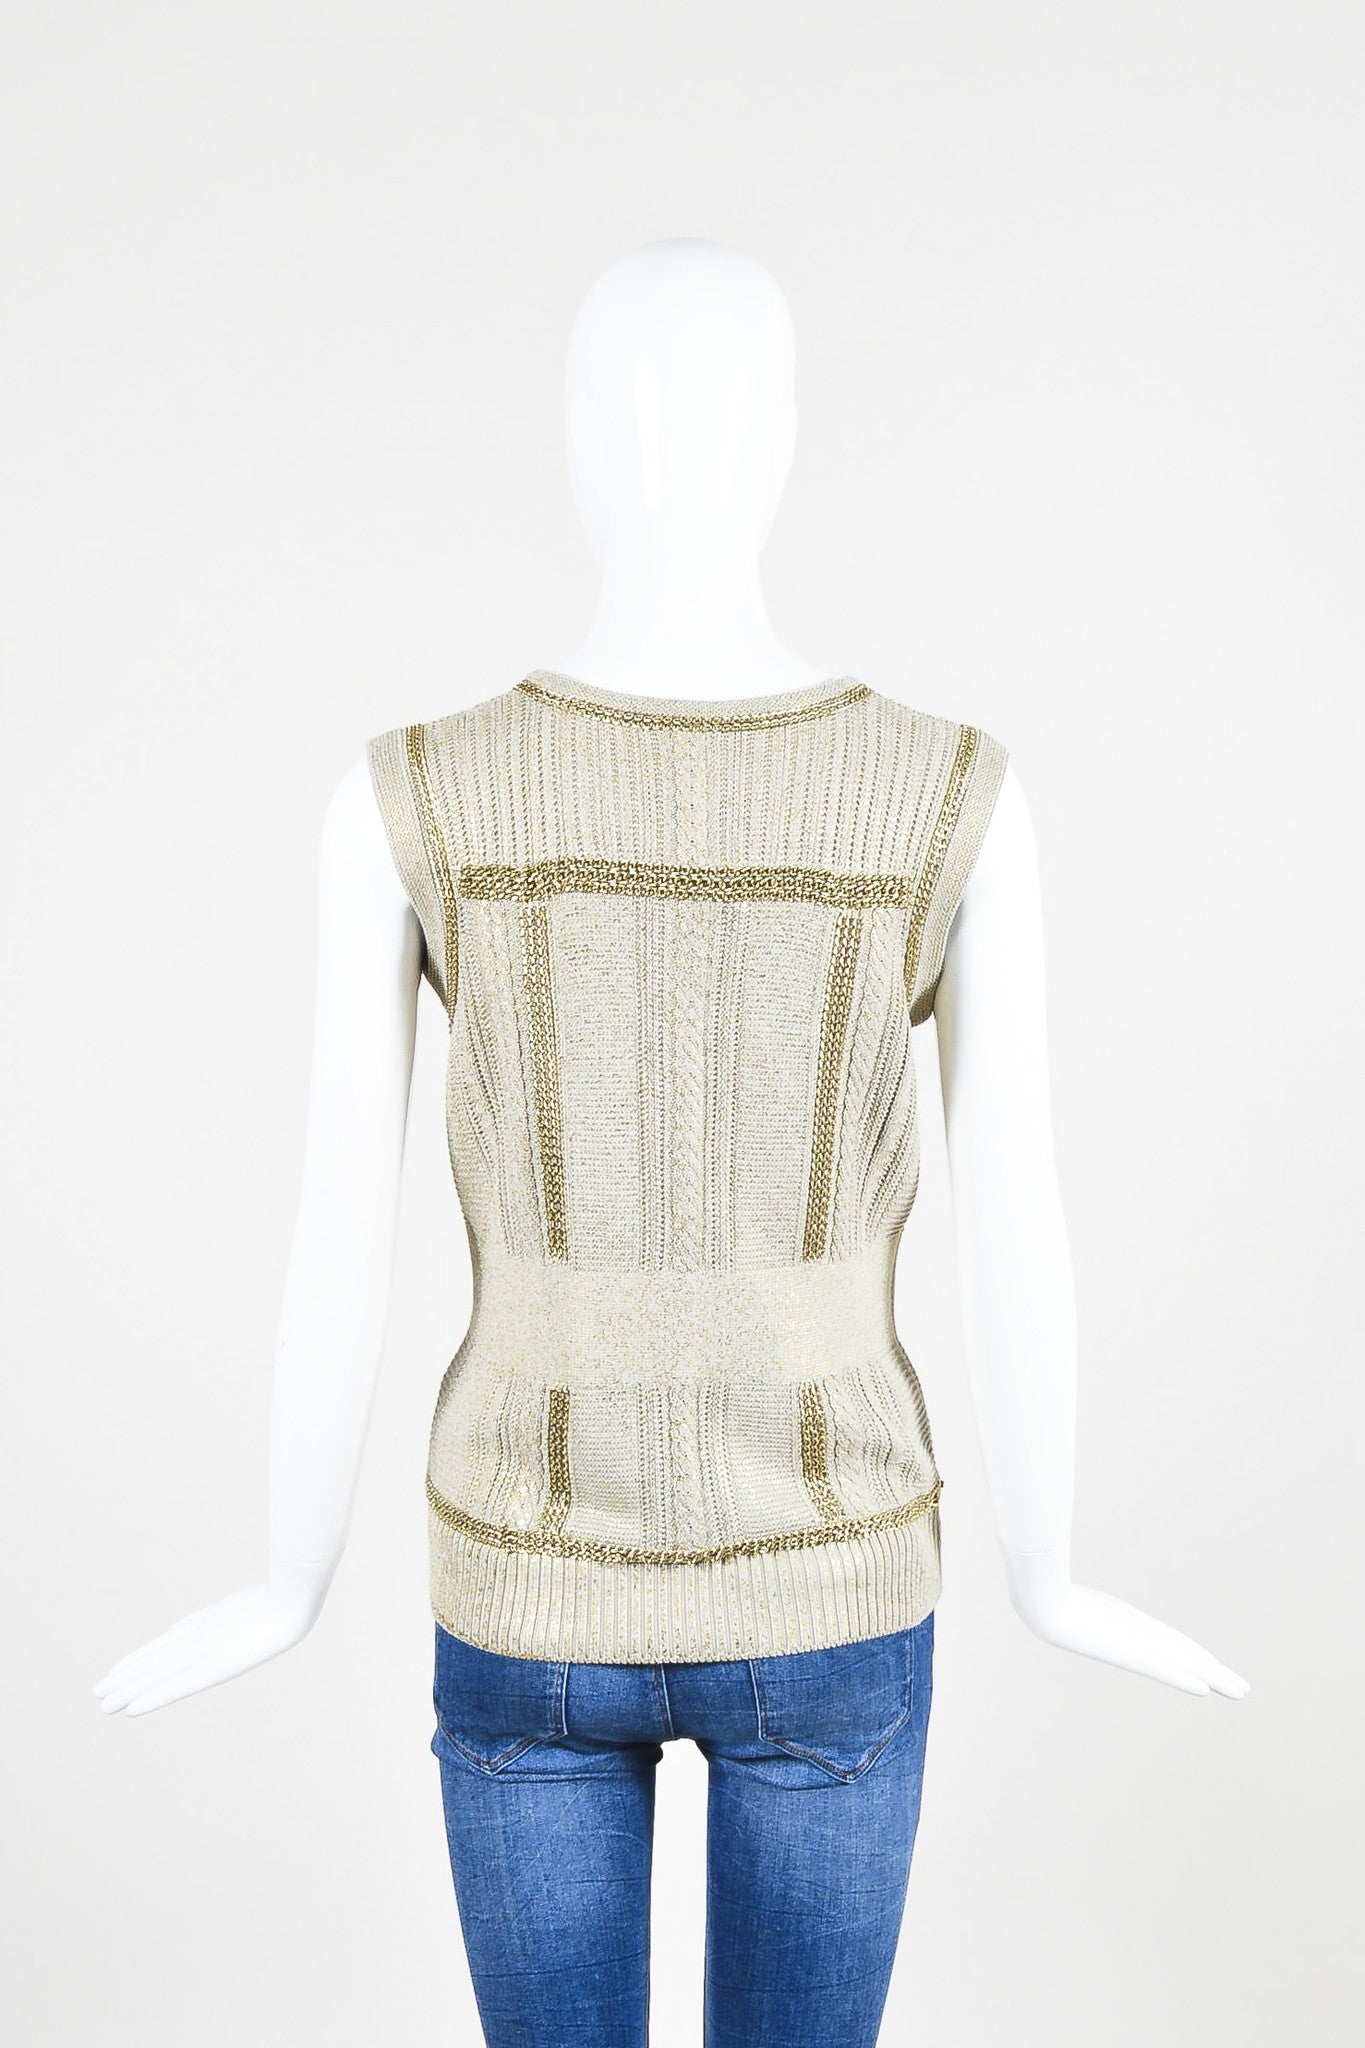 Chanel Taupe Metallic Gold Chain Trim 'CC' Shield Button Sleeveless Cardigan Vest Backview